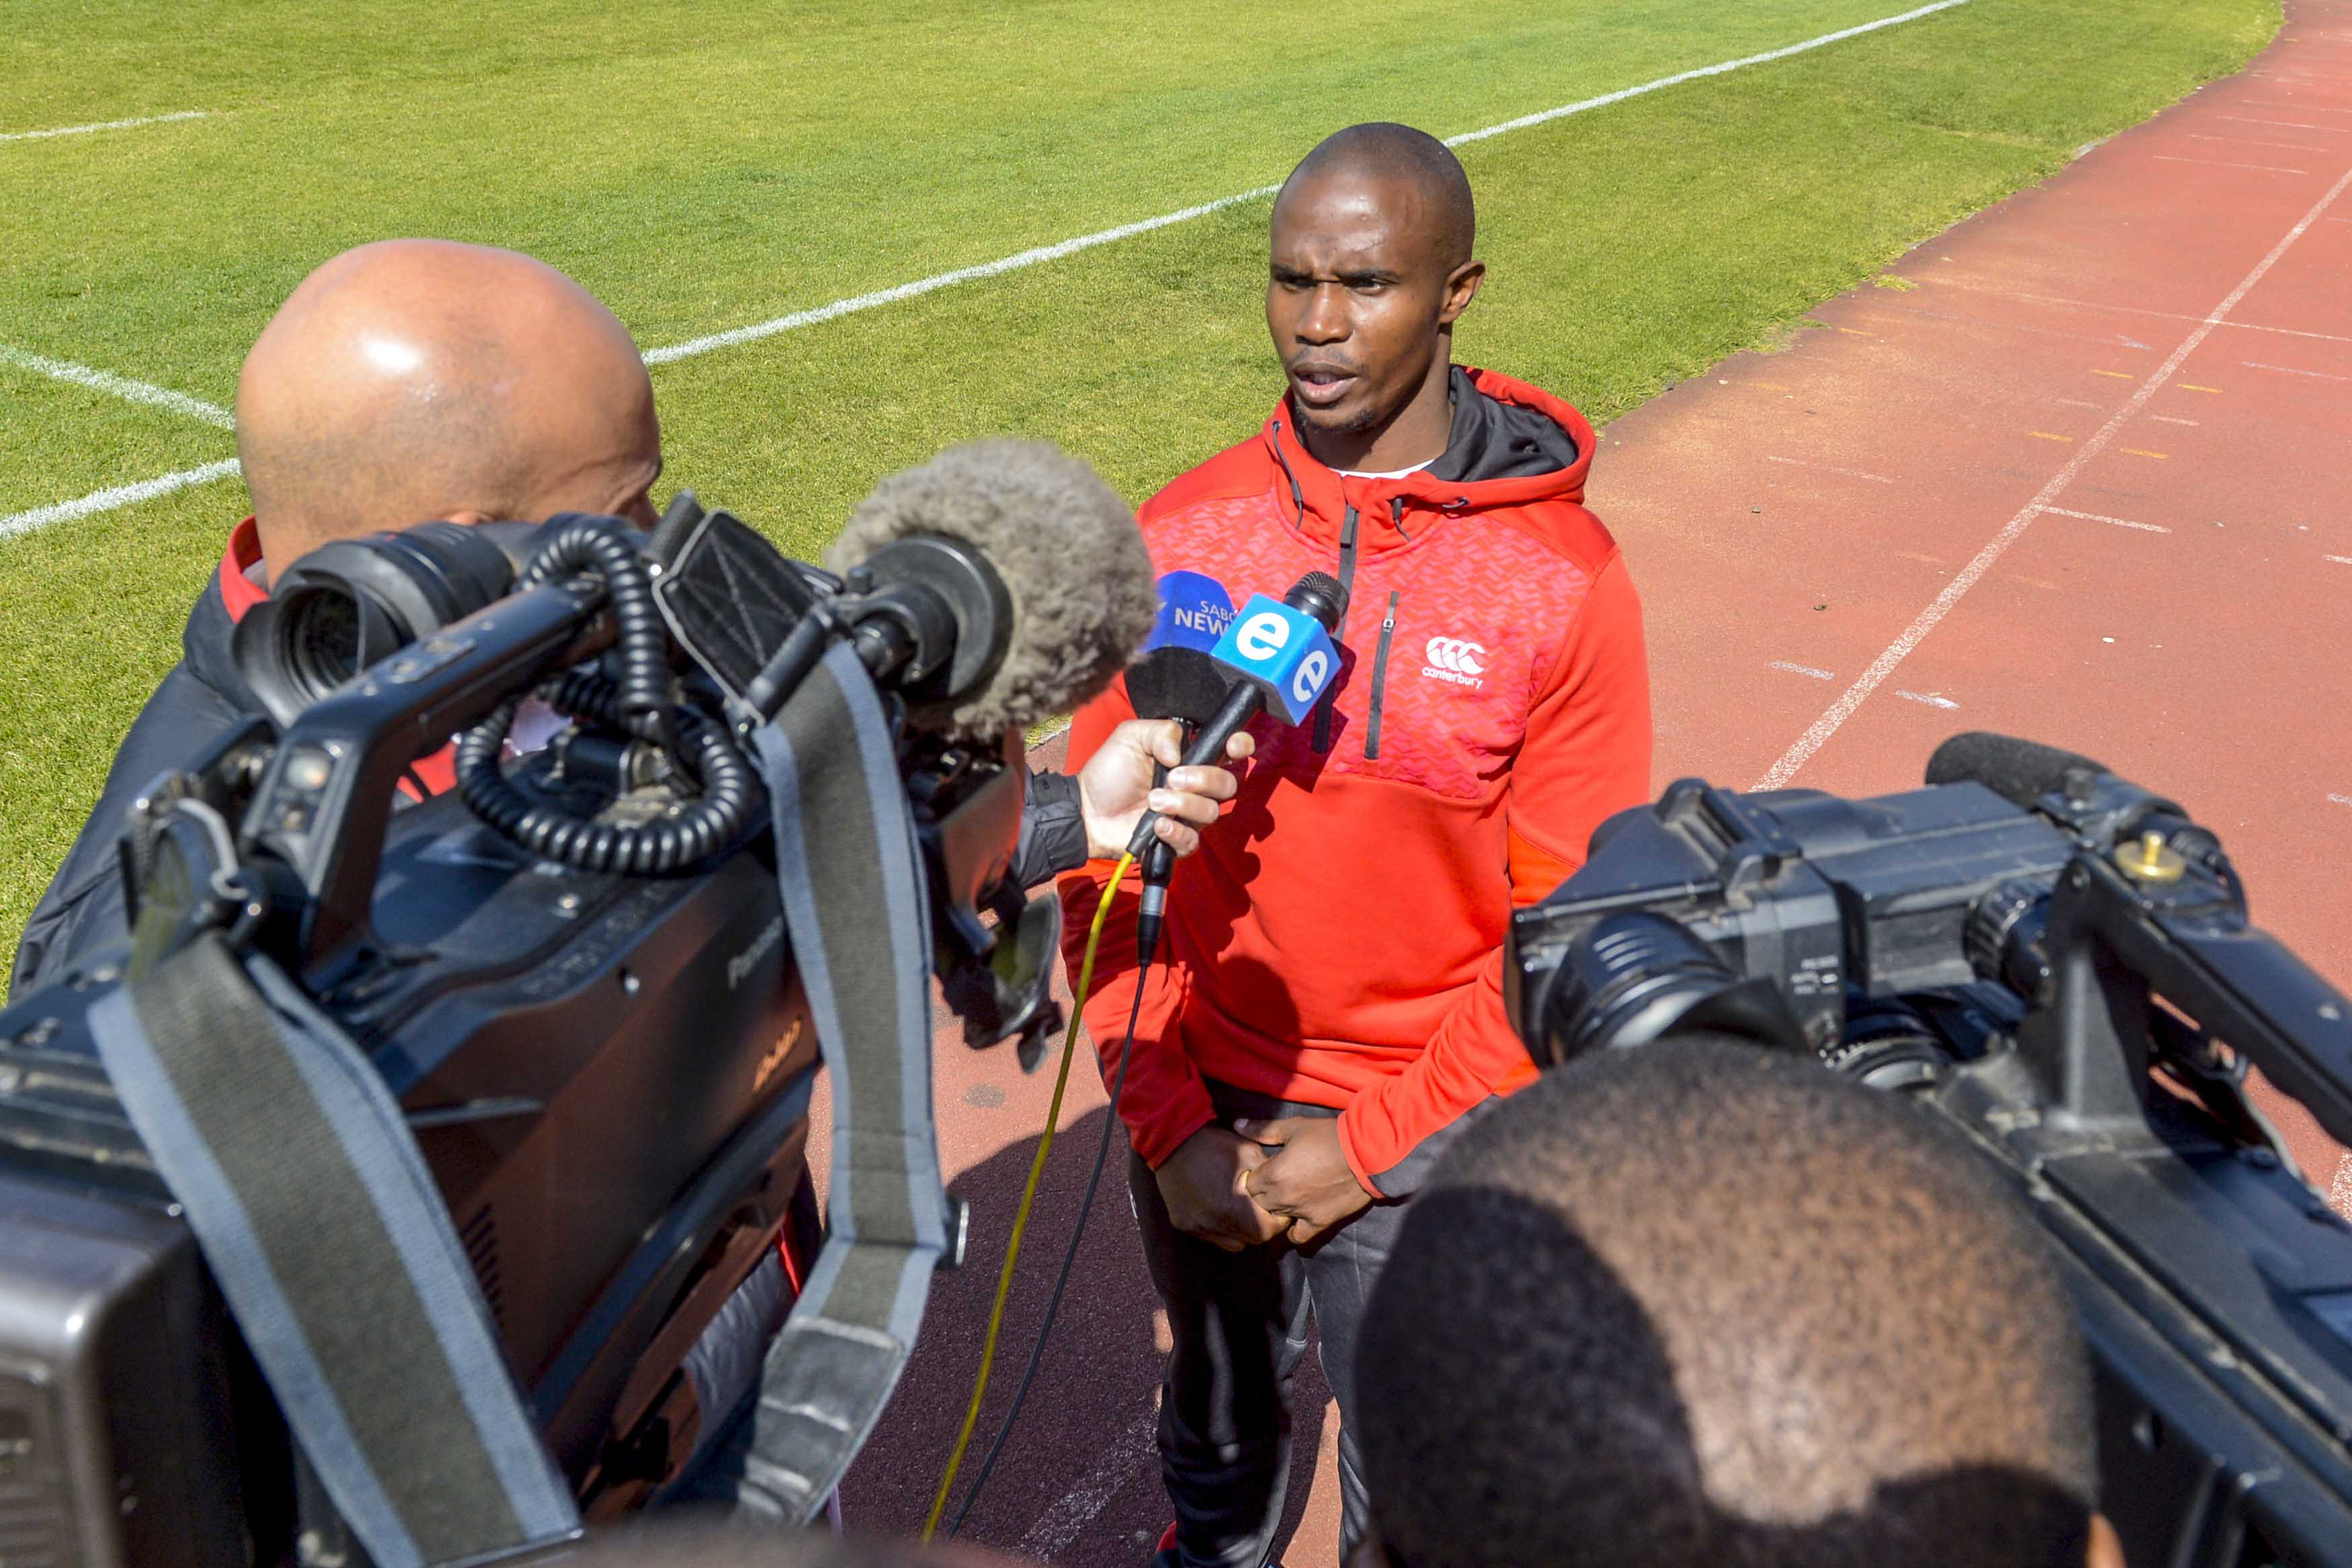 17 July 2018: Lions' defence coach Joey Mongalo speaks to the media during at Johannesburg Stadium. Mongalo will be one of three black coaches in Super Rugby with the country's four franchises. (Photograph by Sydney Seshibedi/Gallo Images)